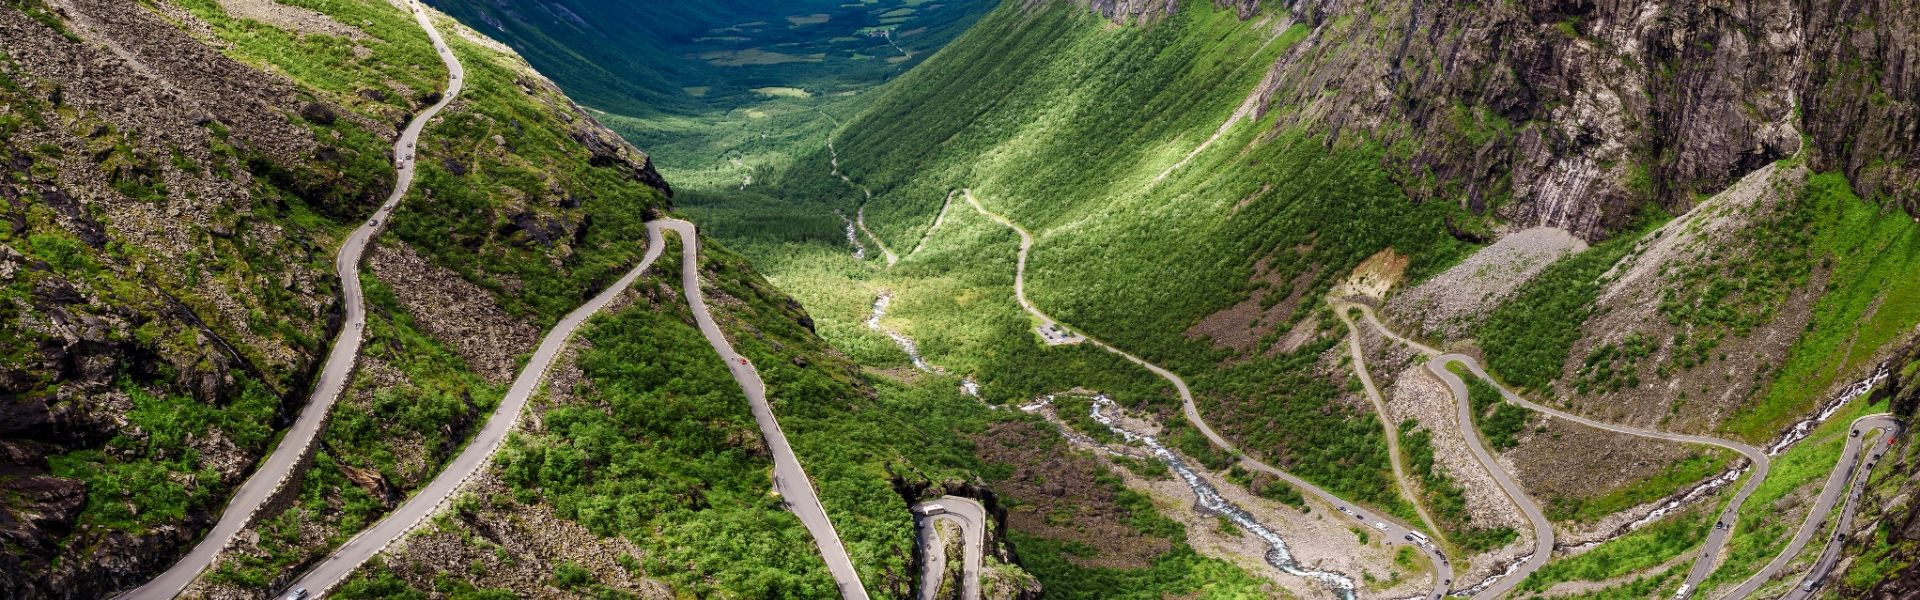 Travel along the Trolls Road in Norway in 2019 with Albatross